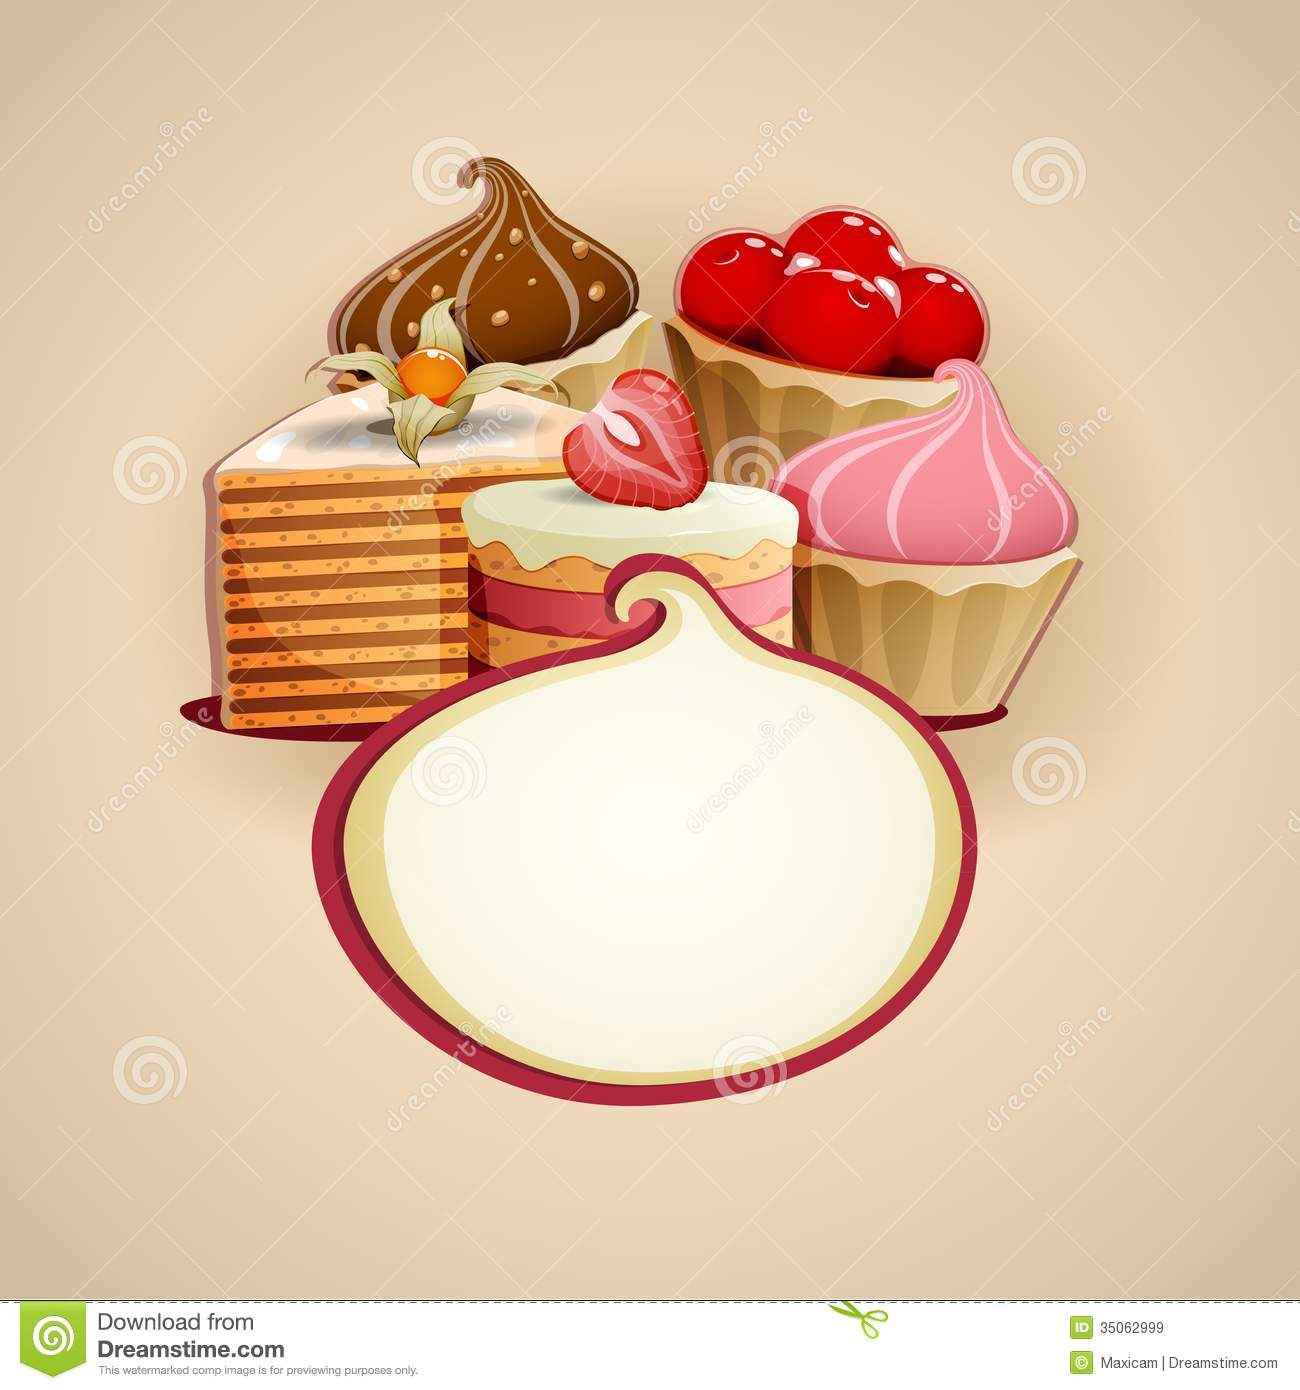 delicious cakes background royalty free stock images